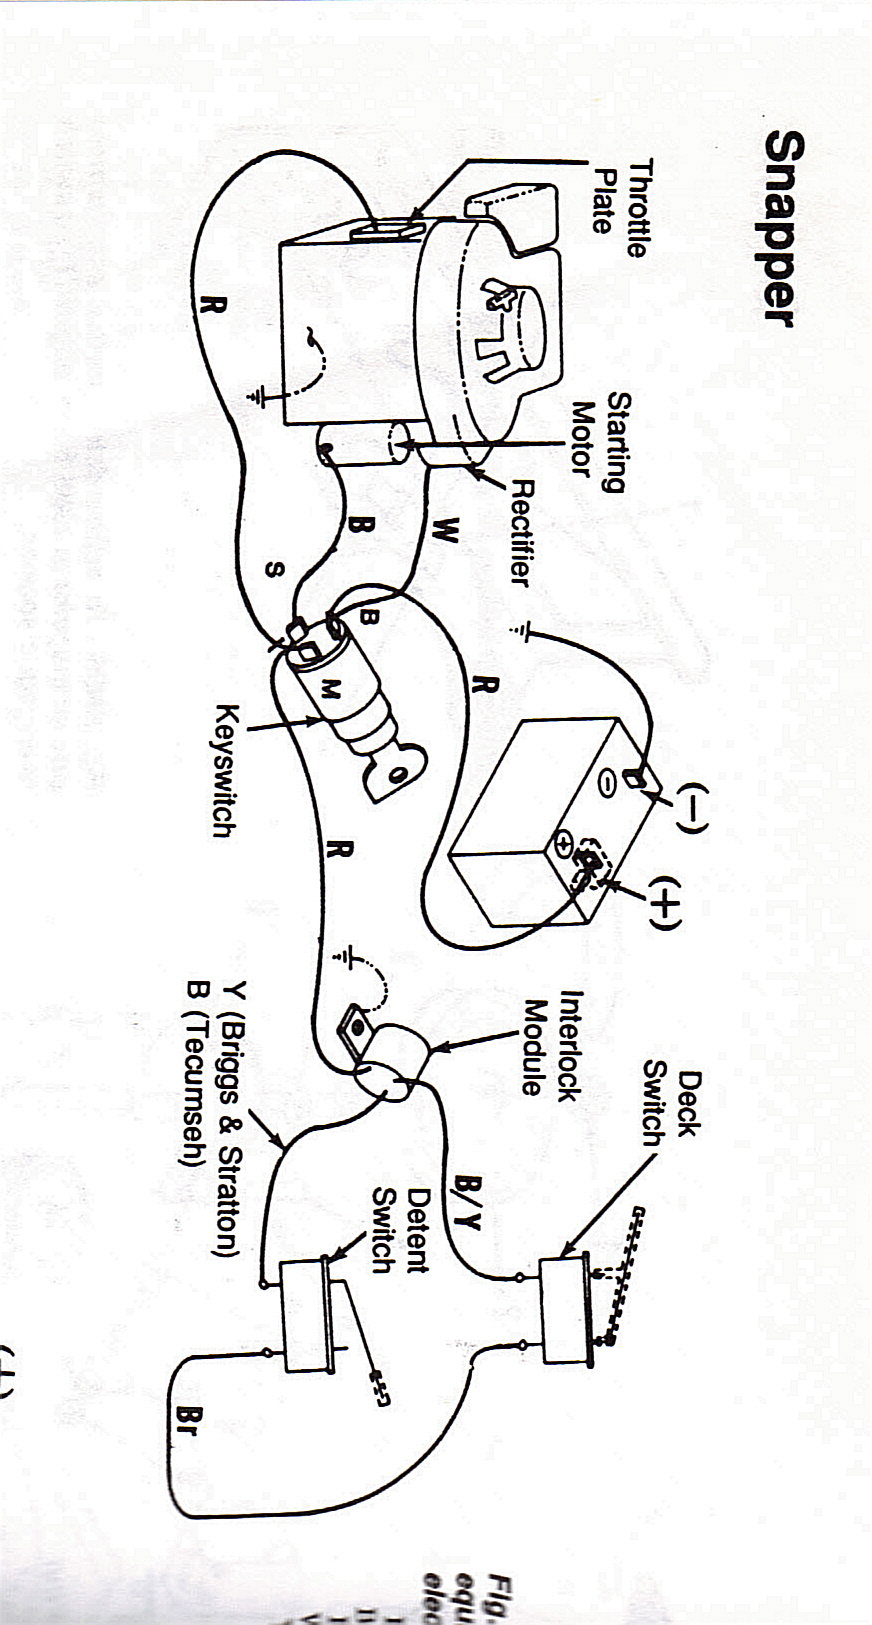 5 Hp Briggs And Stratton Wiring Diagram Charging System 20 I Need A For Engine With Sn 133437